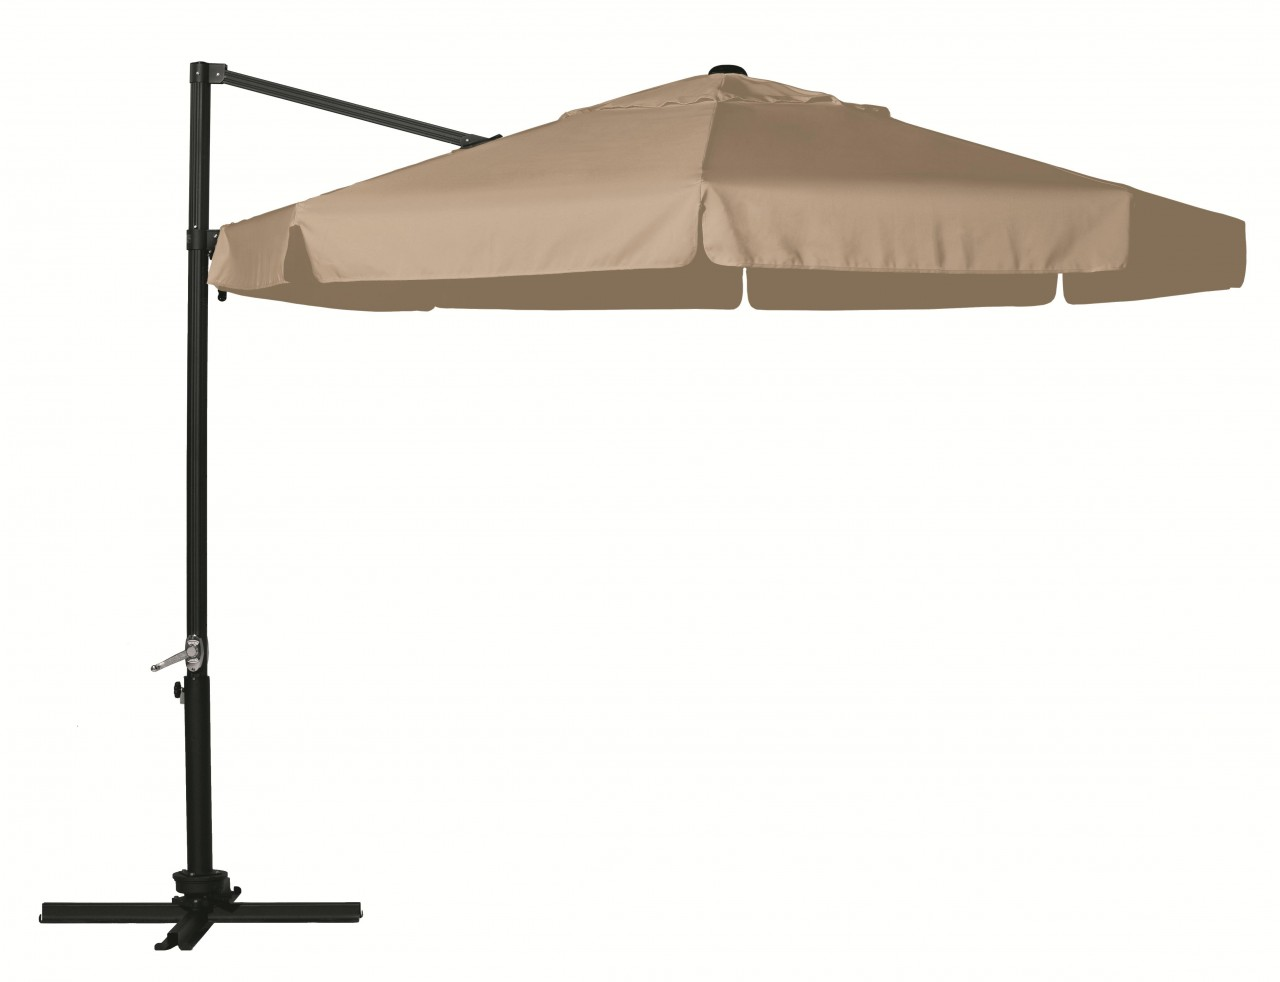 Hartman 3m Focus Free Arm Parasol in Caramel With Silver